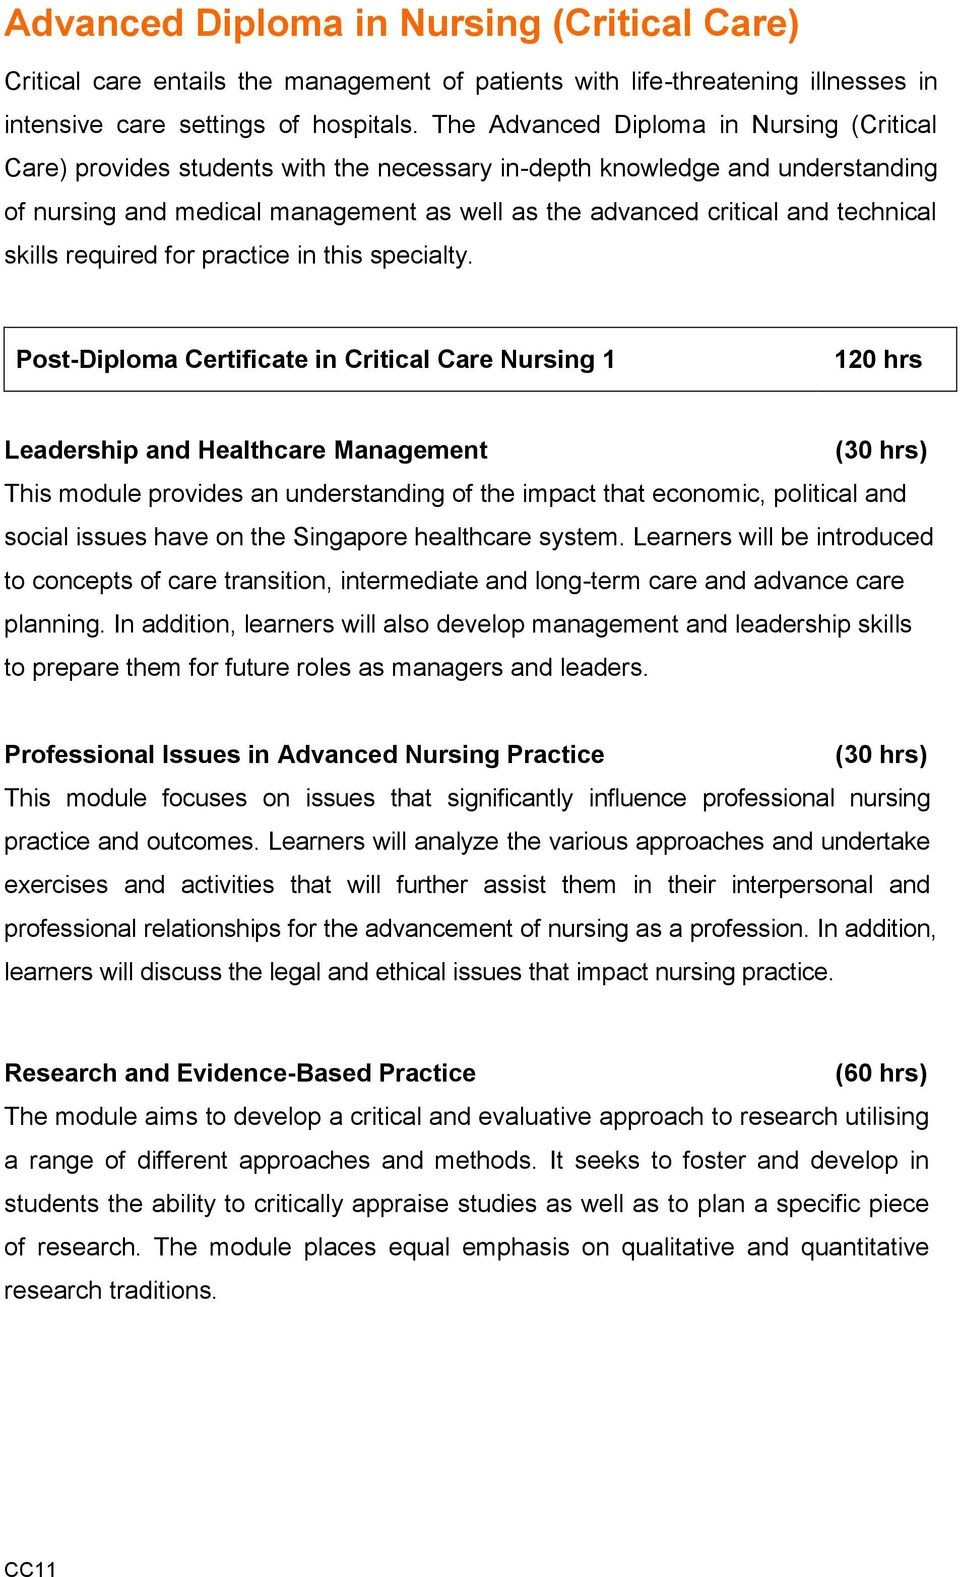 Advanced Diploma in Nursing (Critical Care) - PDF